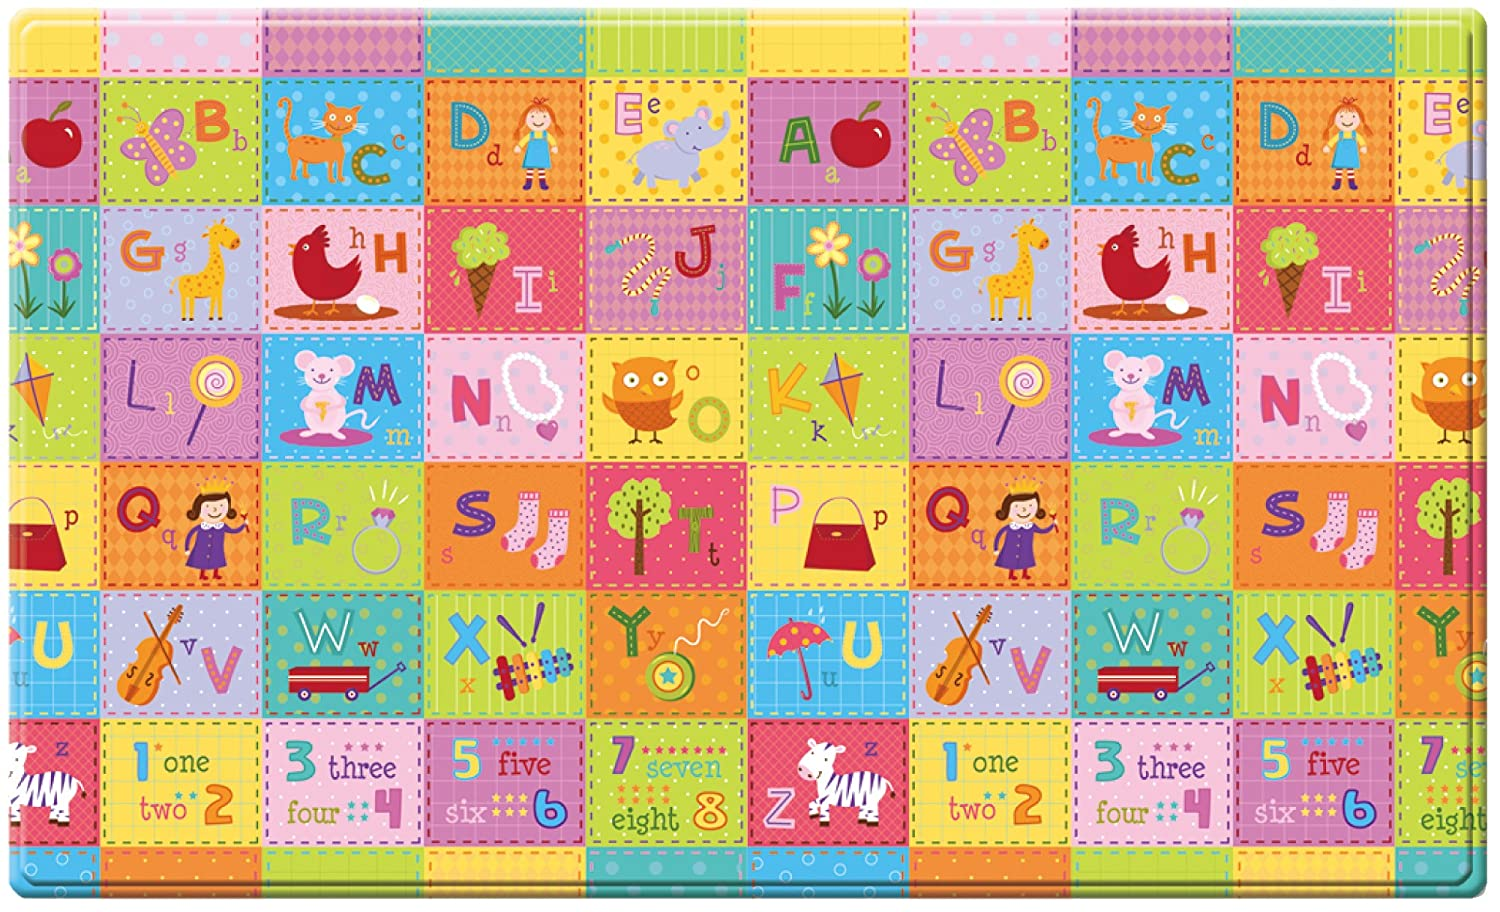 esterilla de juegos para niños - Dwinguler playmat - ZOO - Medium - 1,9m * 1,3m *15mm: Amazon.es: Bebé